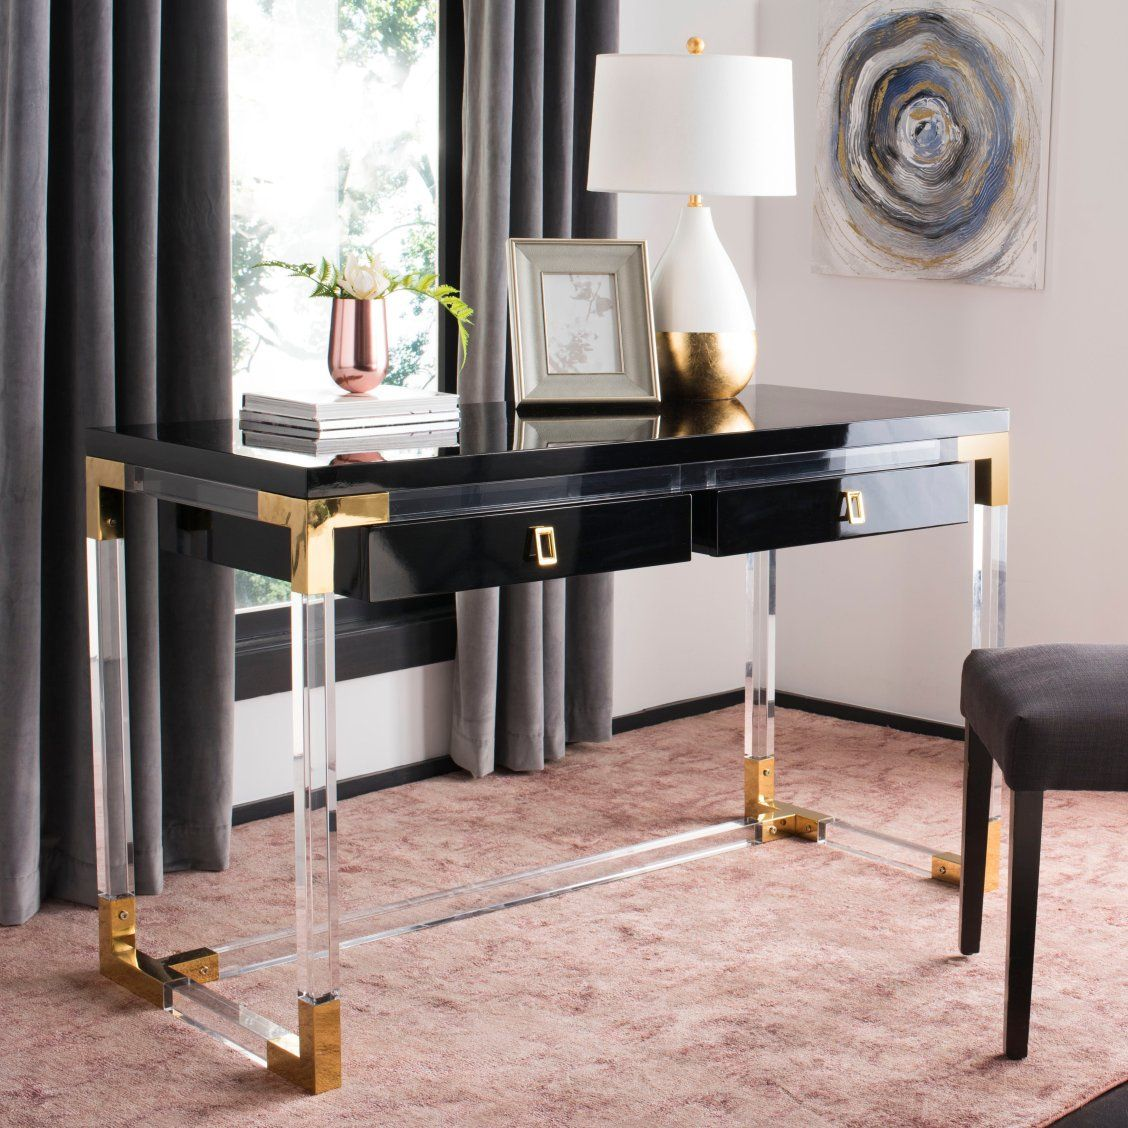 Ethereal And Extravagant This Contemporary Acrylic Desk Adds